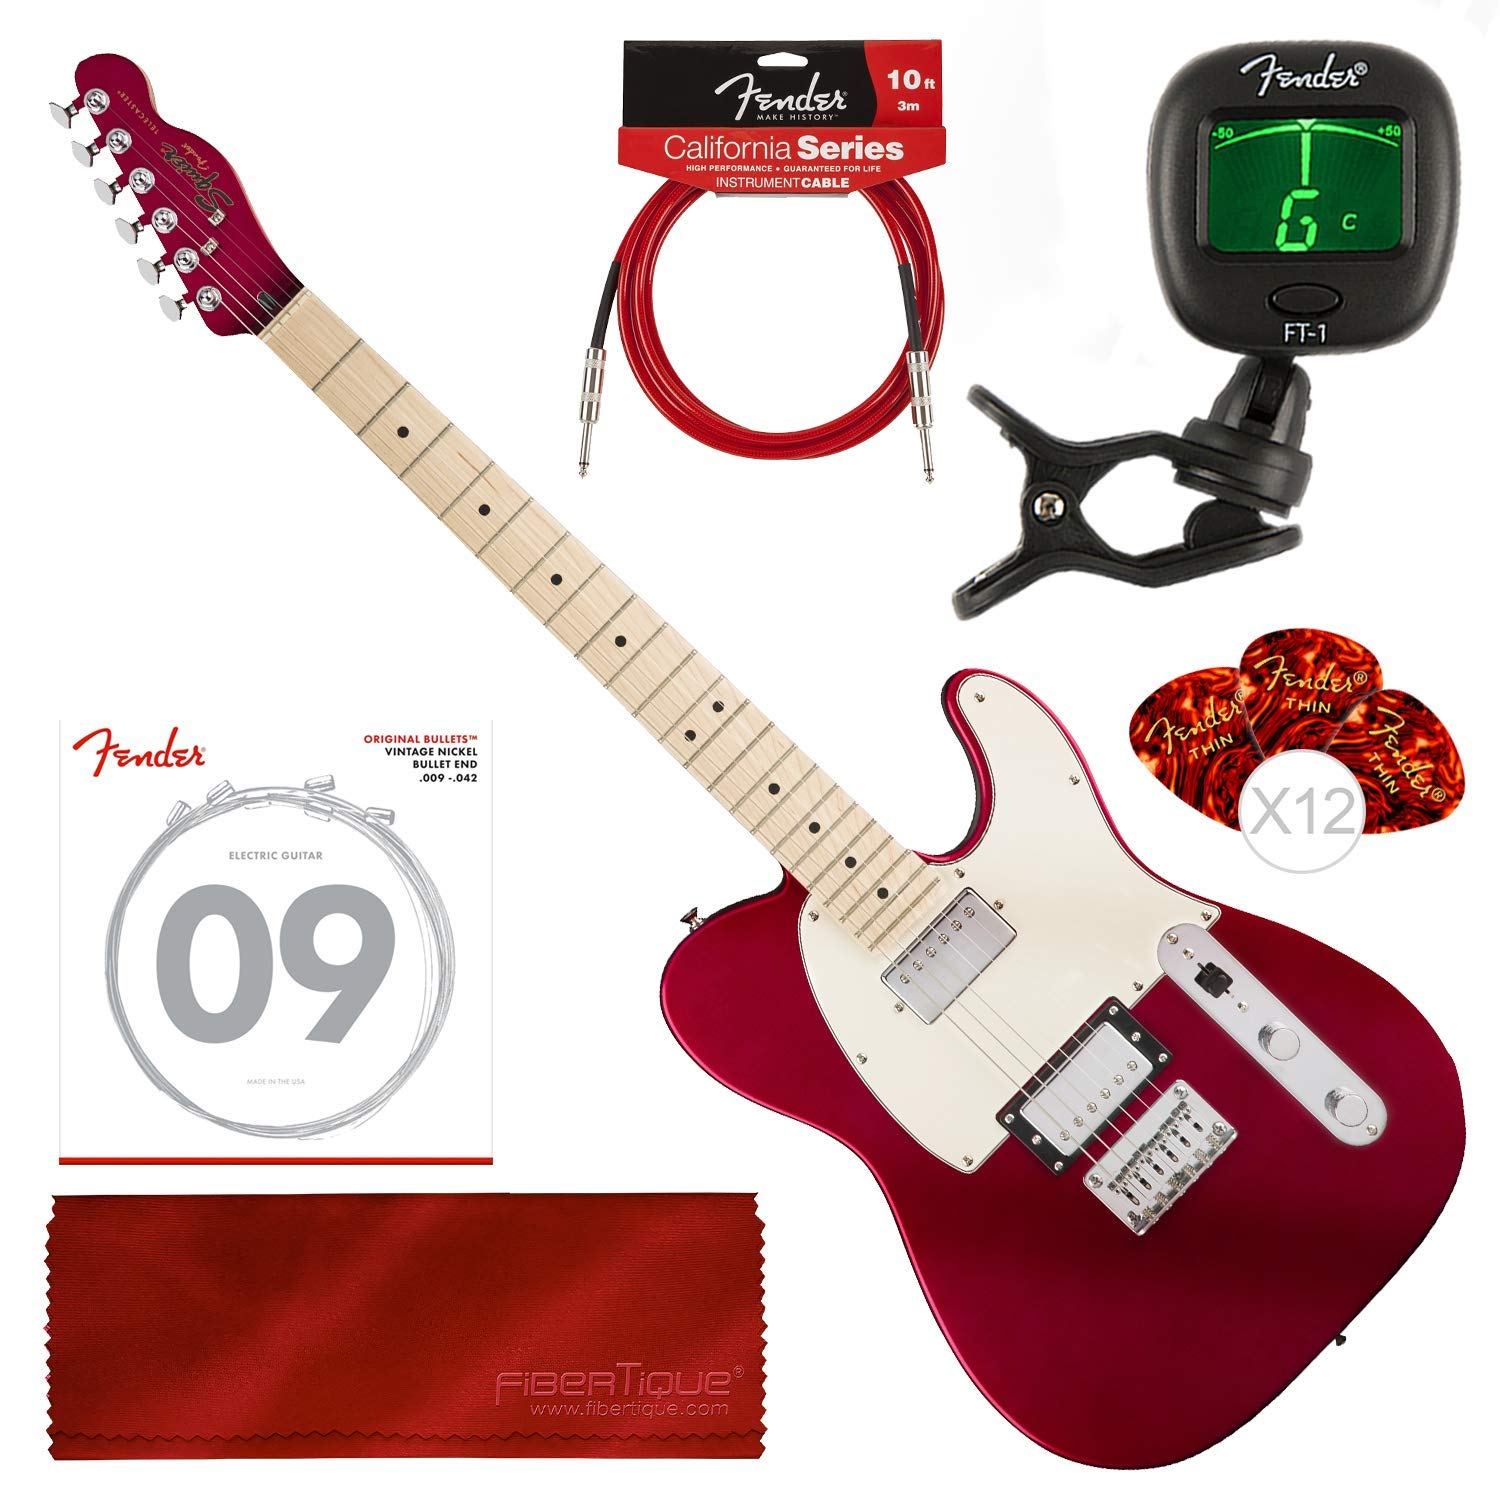 Cheap Squier by Fender Contemporary Telecaster Electric Guitar HH Dark Metallic Red with Tuner Strings Picks Cable & Cloth Bundle Black Friday & Cyber Monday 2019